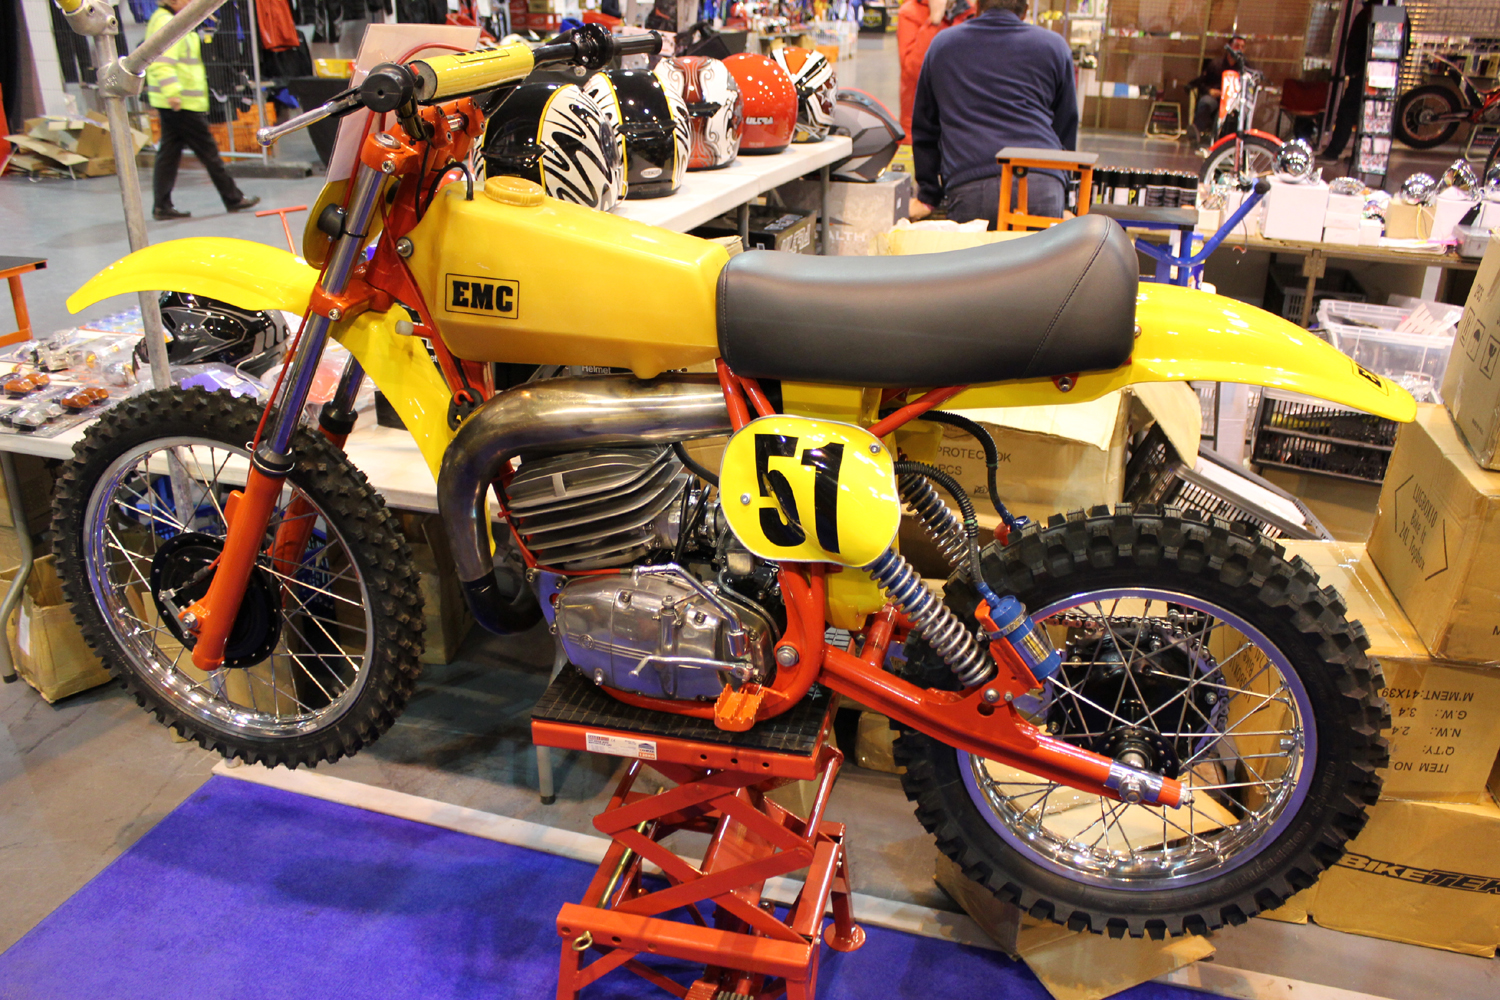 classicdirtbikerider.com-photo by Mr J-2015 Telford classic dirt bike show-EMC-CZ TWINSHOCK MOTOCROSS BIKE